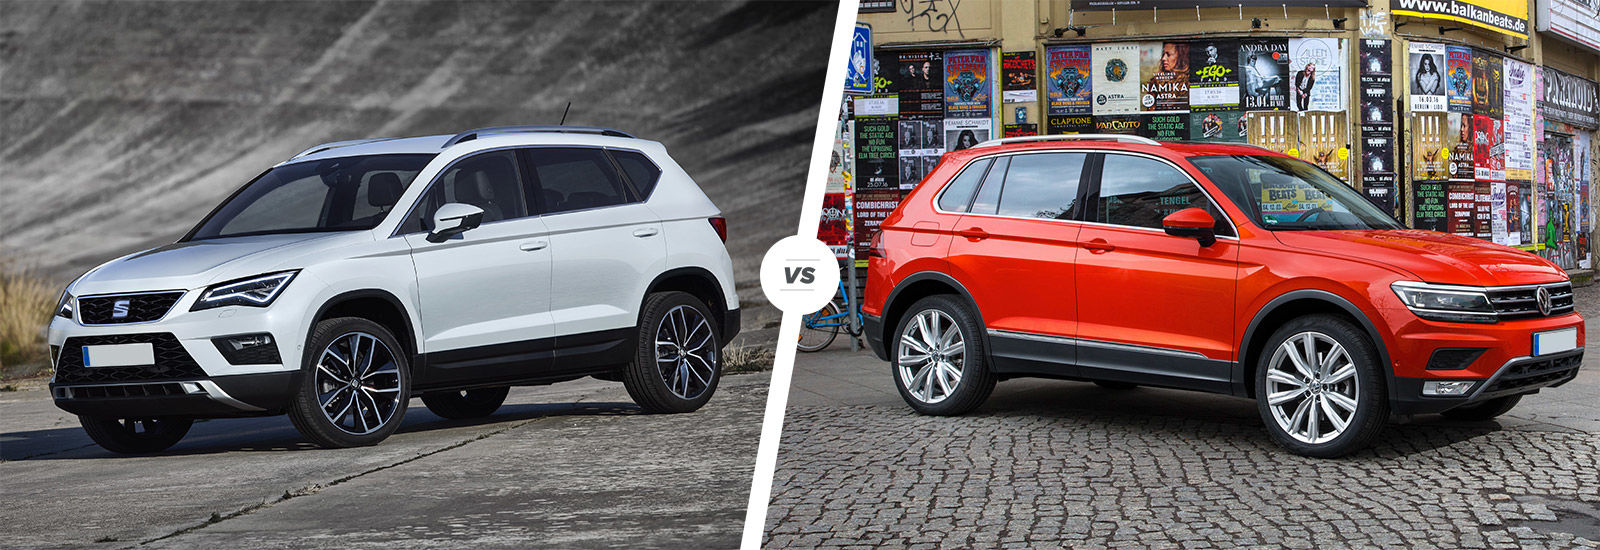 seat ateca vs vw tiguan suv comparison carwow. Black Bedroom Furniture Sets. Home Design Ideas